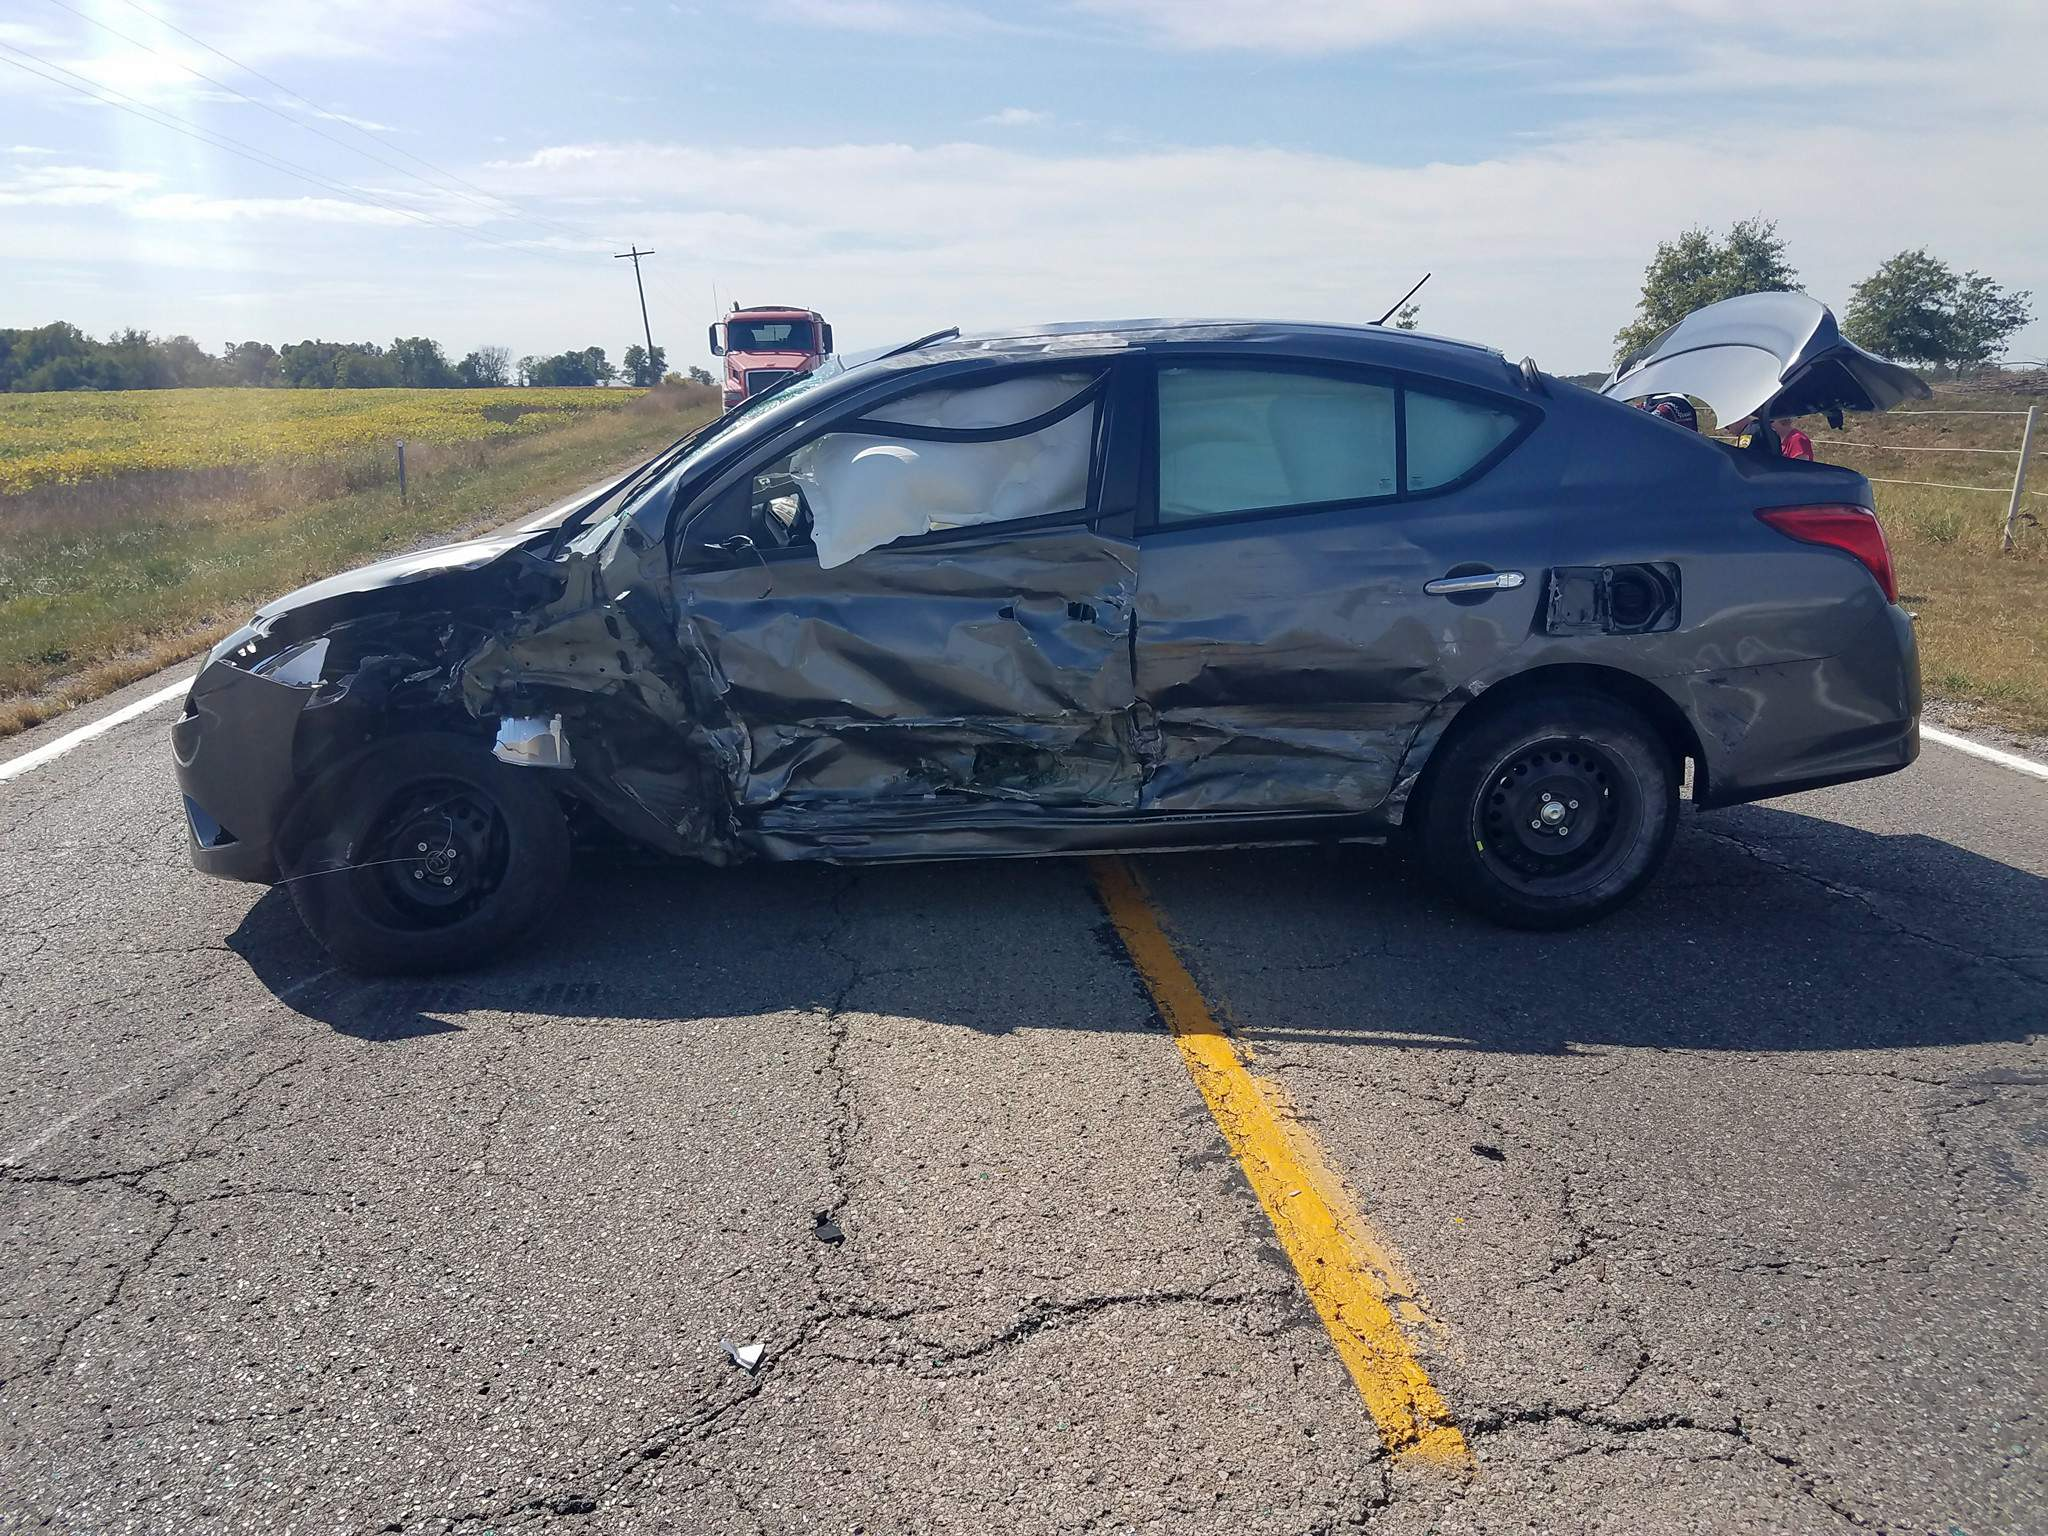 A two-vehicle accident on State Route 150, the first of two accidents about three hours apart on the highway, resulted in injuries to a Chicago resident. Pictured is one of the vehicles involved in the first accident.